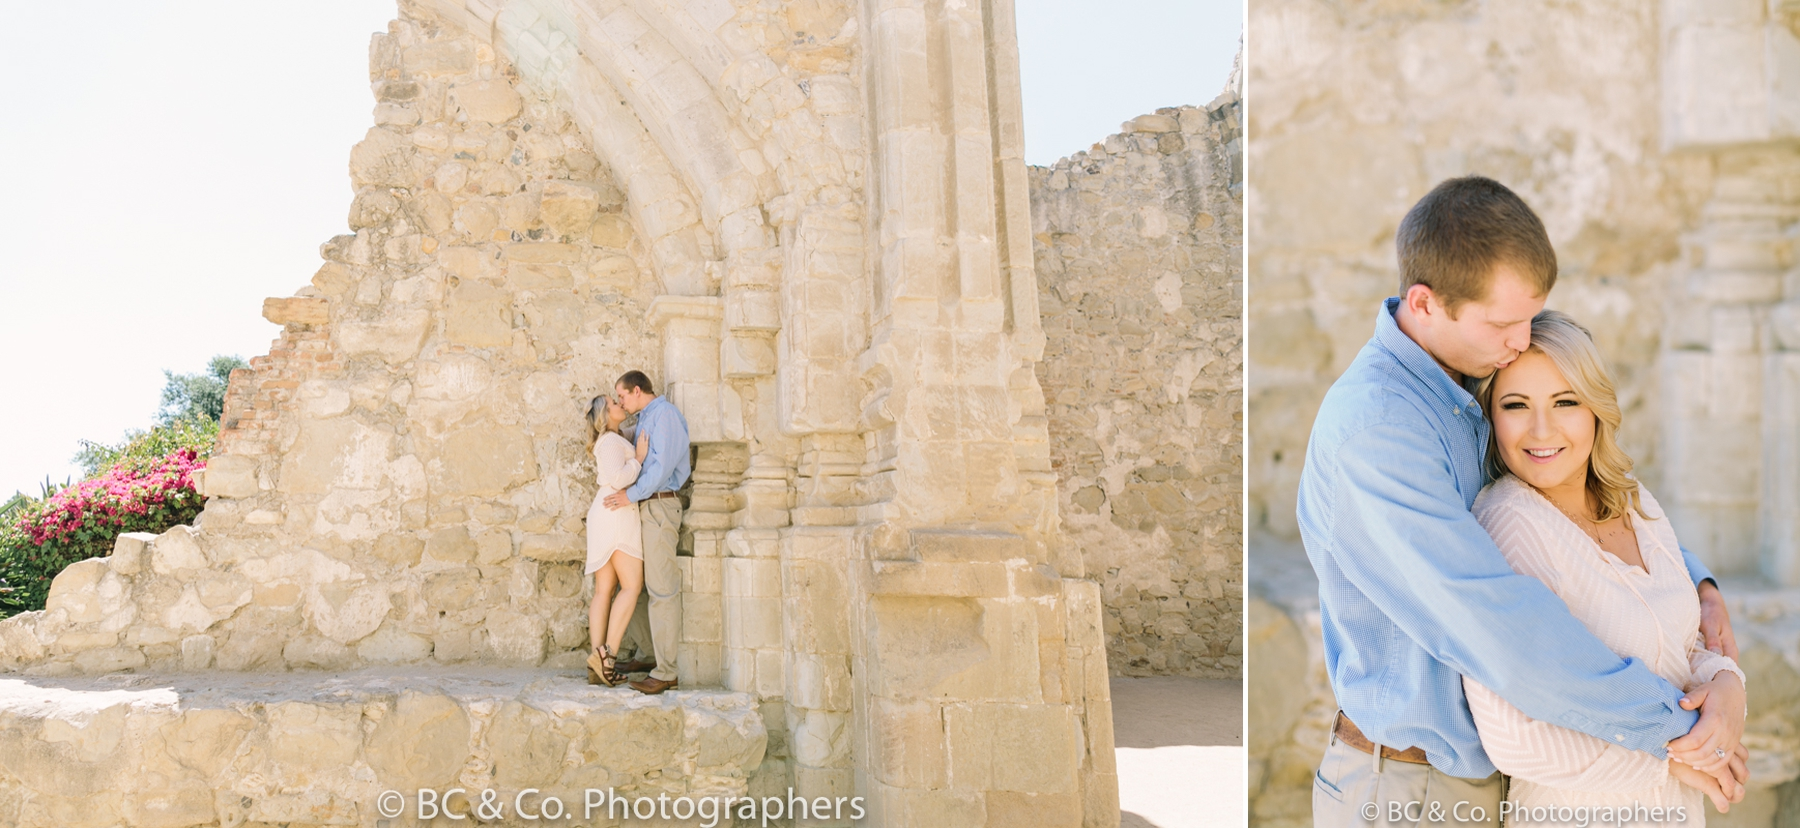 Orange-County-Wedding-Photography-Brianna-Caster-And-Co-Photographers 3